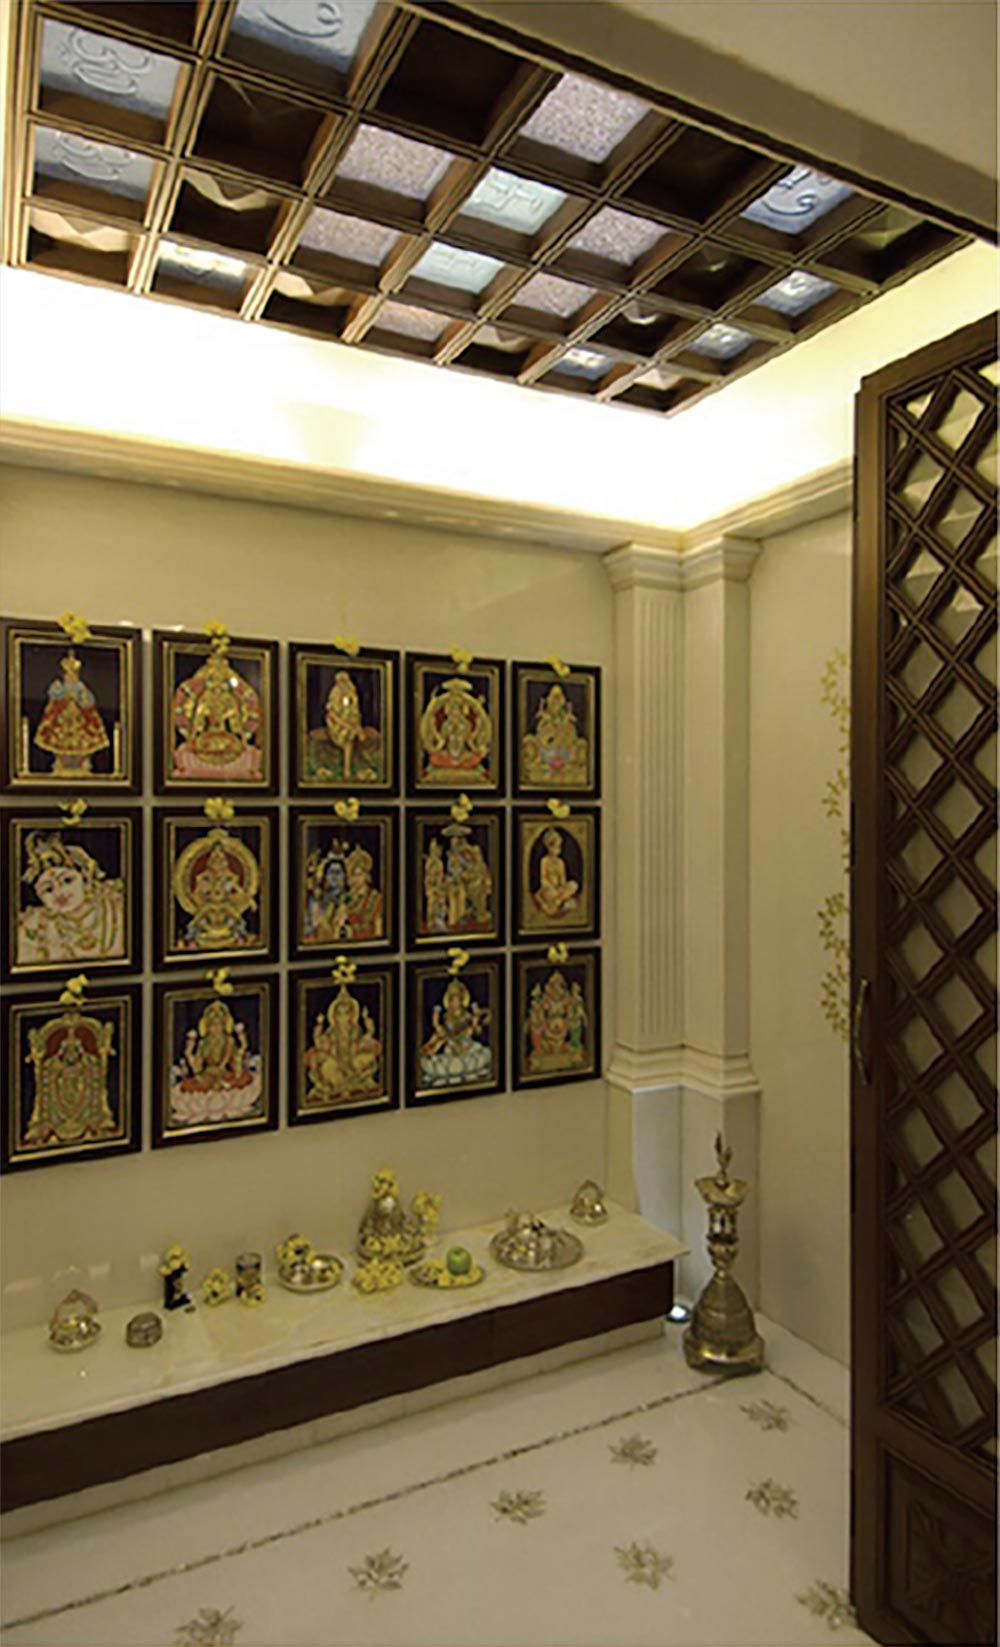 9 Traditional Pooja Room Door Designs In 2020: Pin By ASHA LATHA On HOME SWEET HOME PART 1